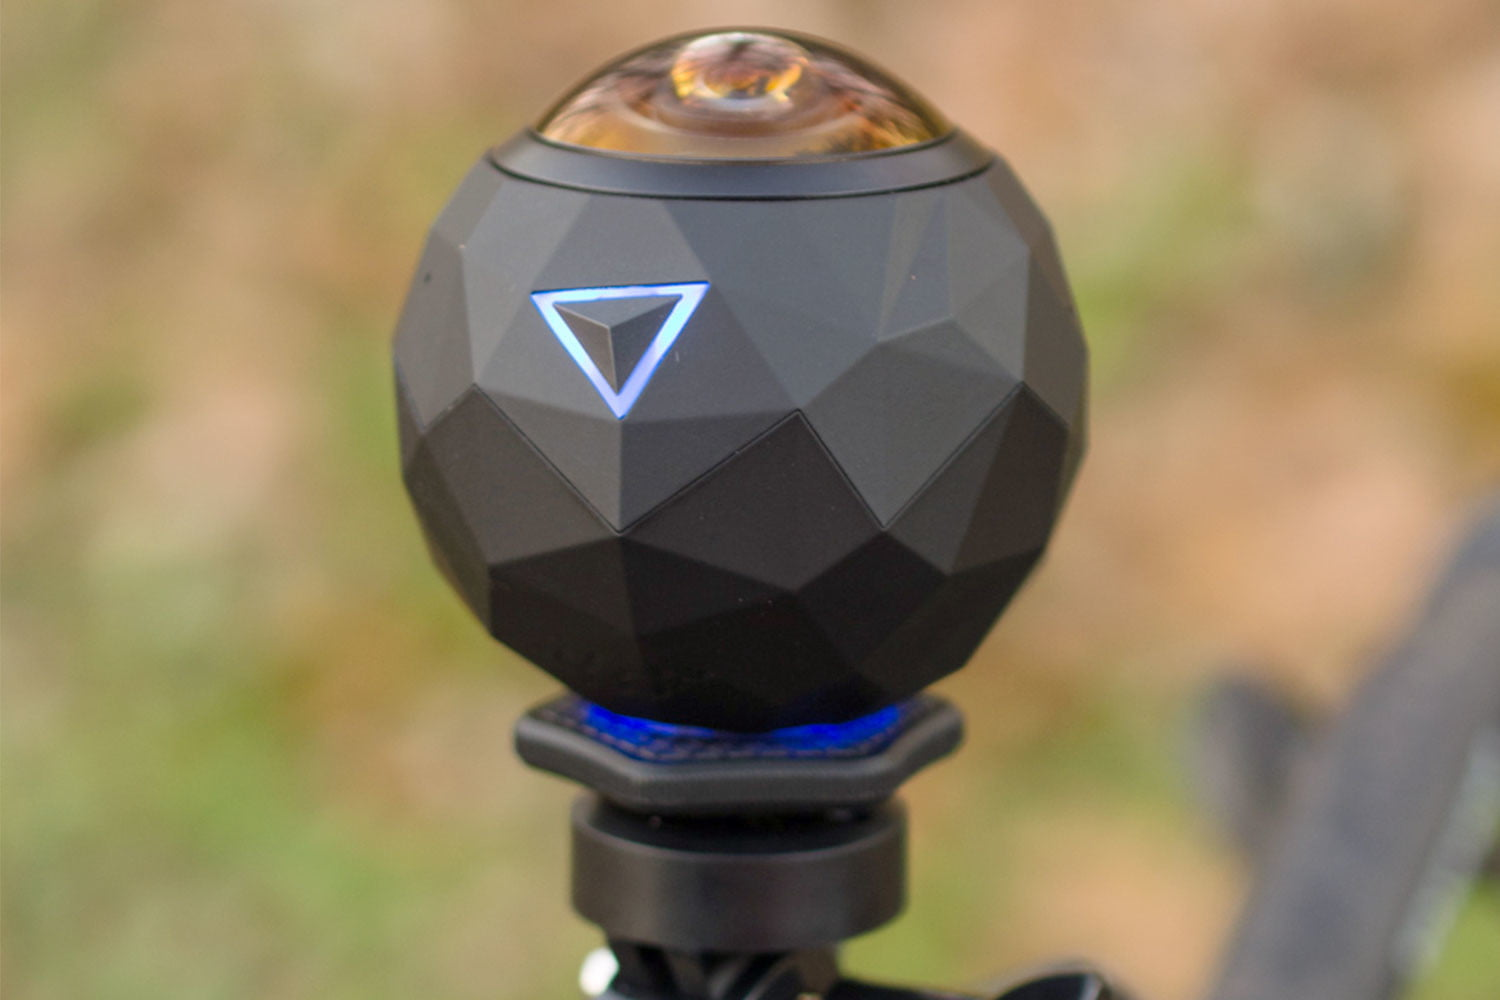 360Fly 4K action camera review